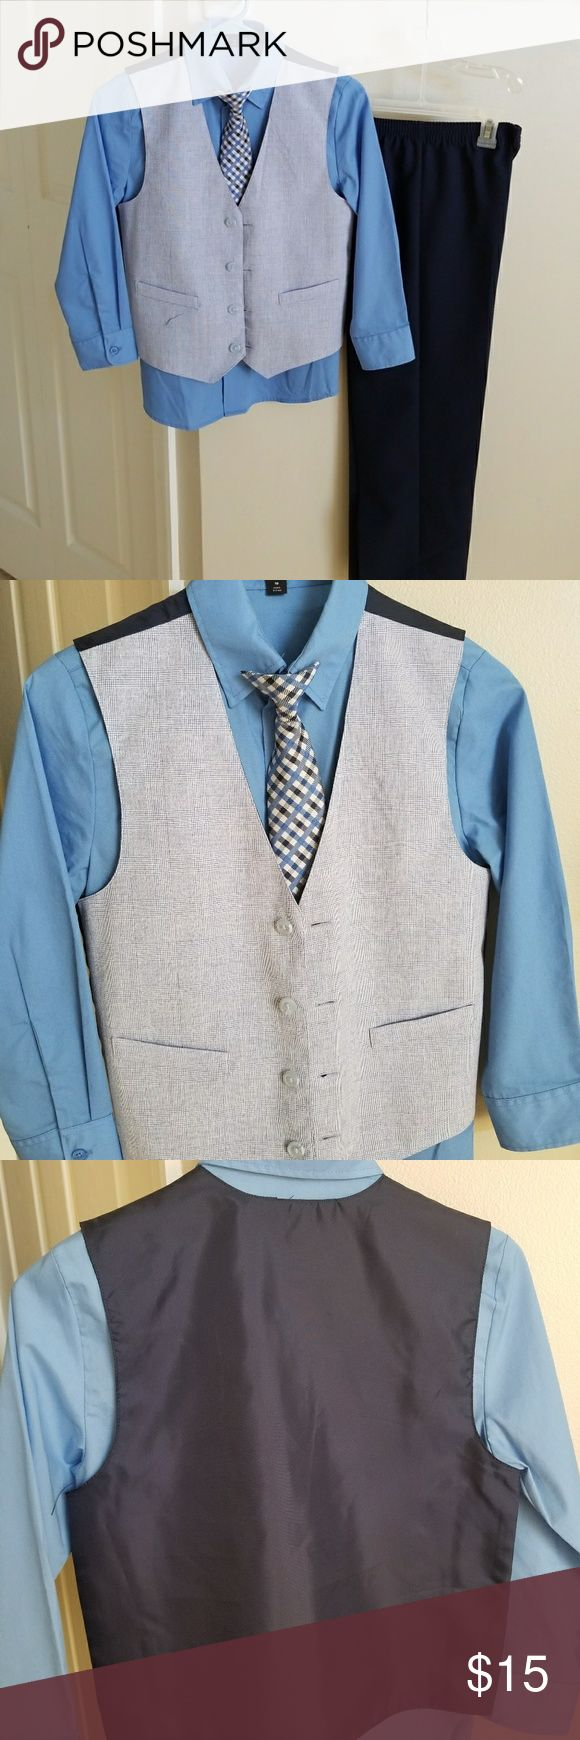 Special occasion dress outfit Only worn once this sharp set with instant style comes with this trendy navy vest, navy blue pants,  blue button down shirt and coordinating clip on tie. George Matching Sets